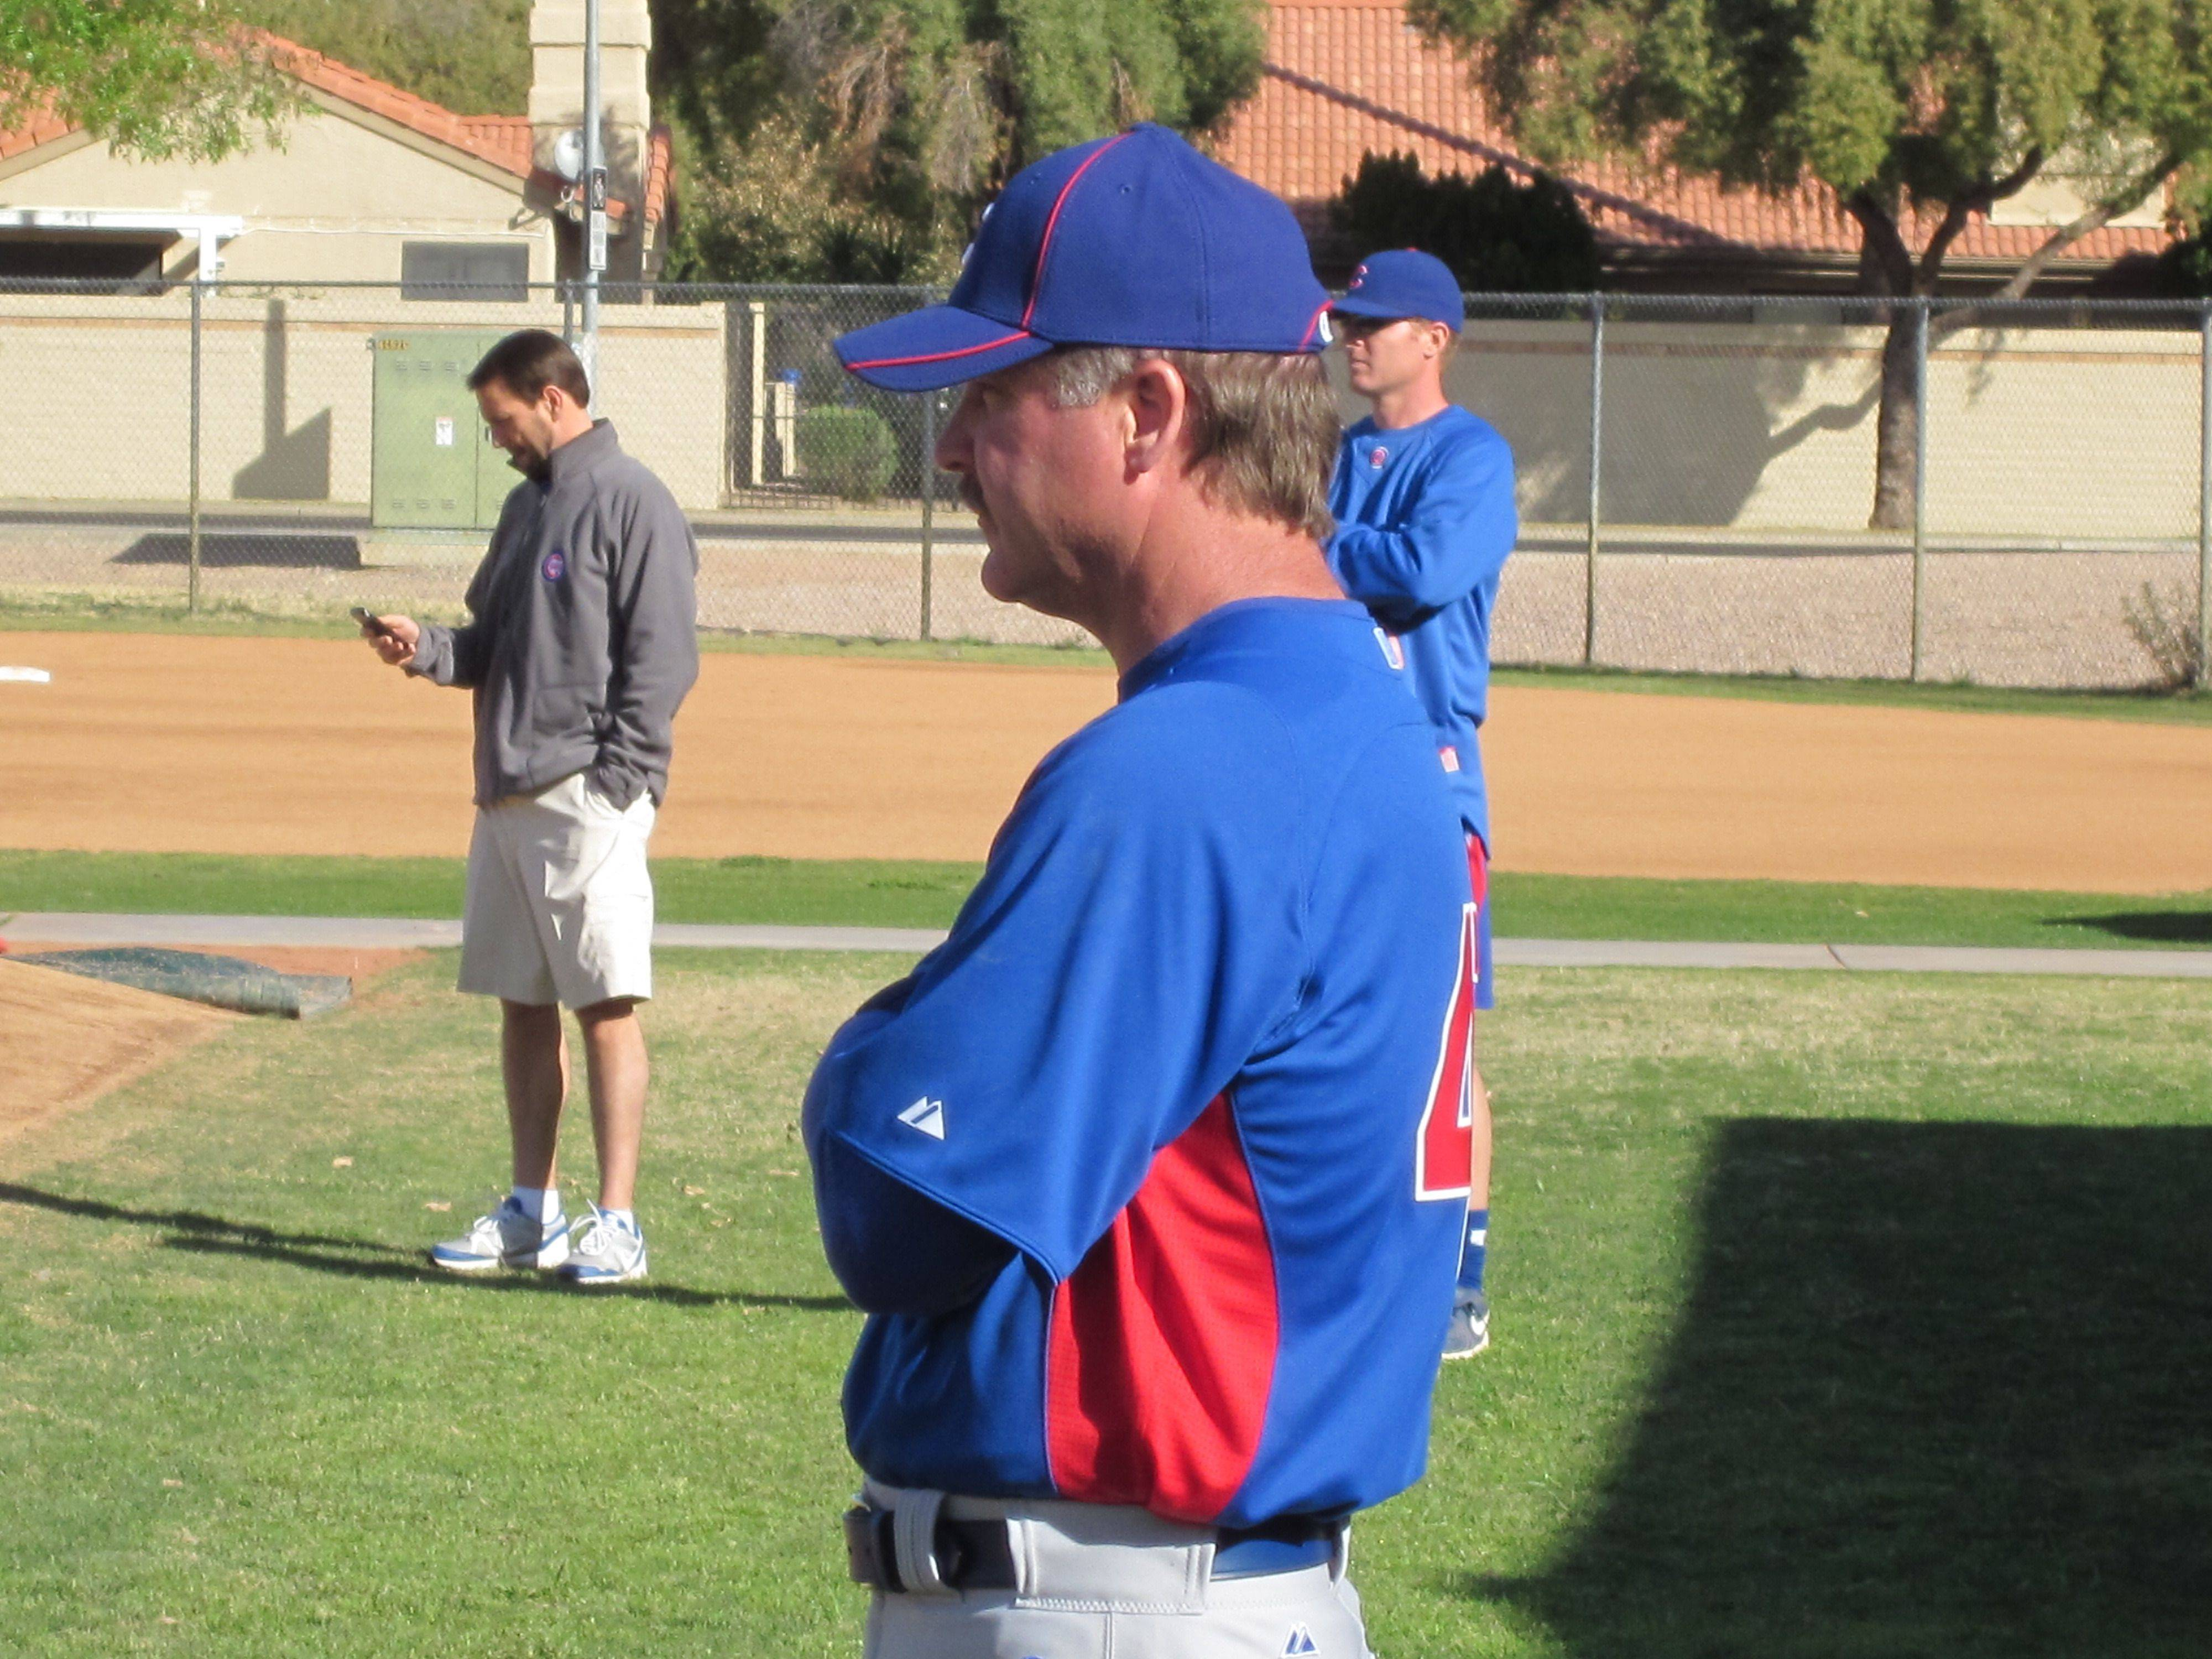 Images from Cubs players and personnel at spring training in Mesa on Thursday.